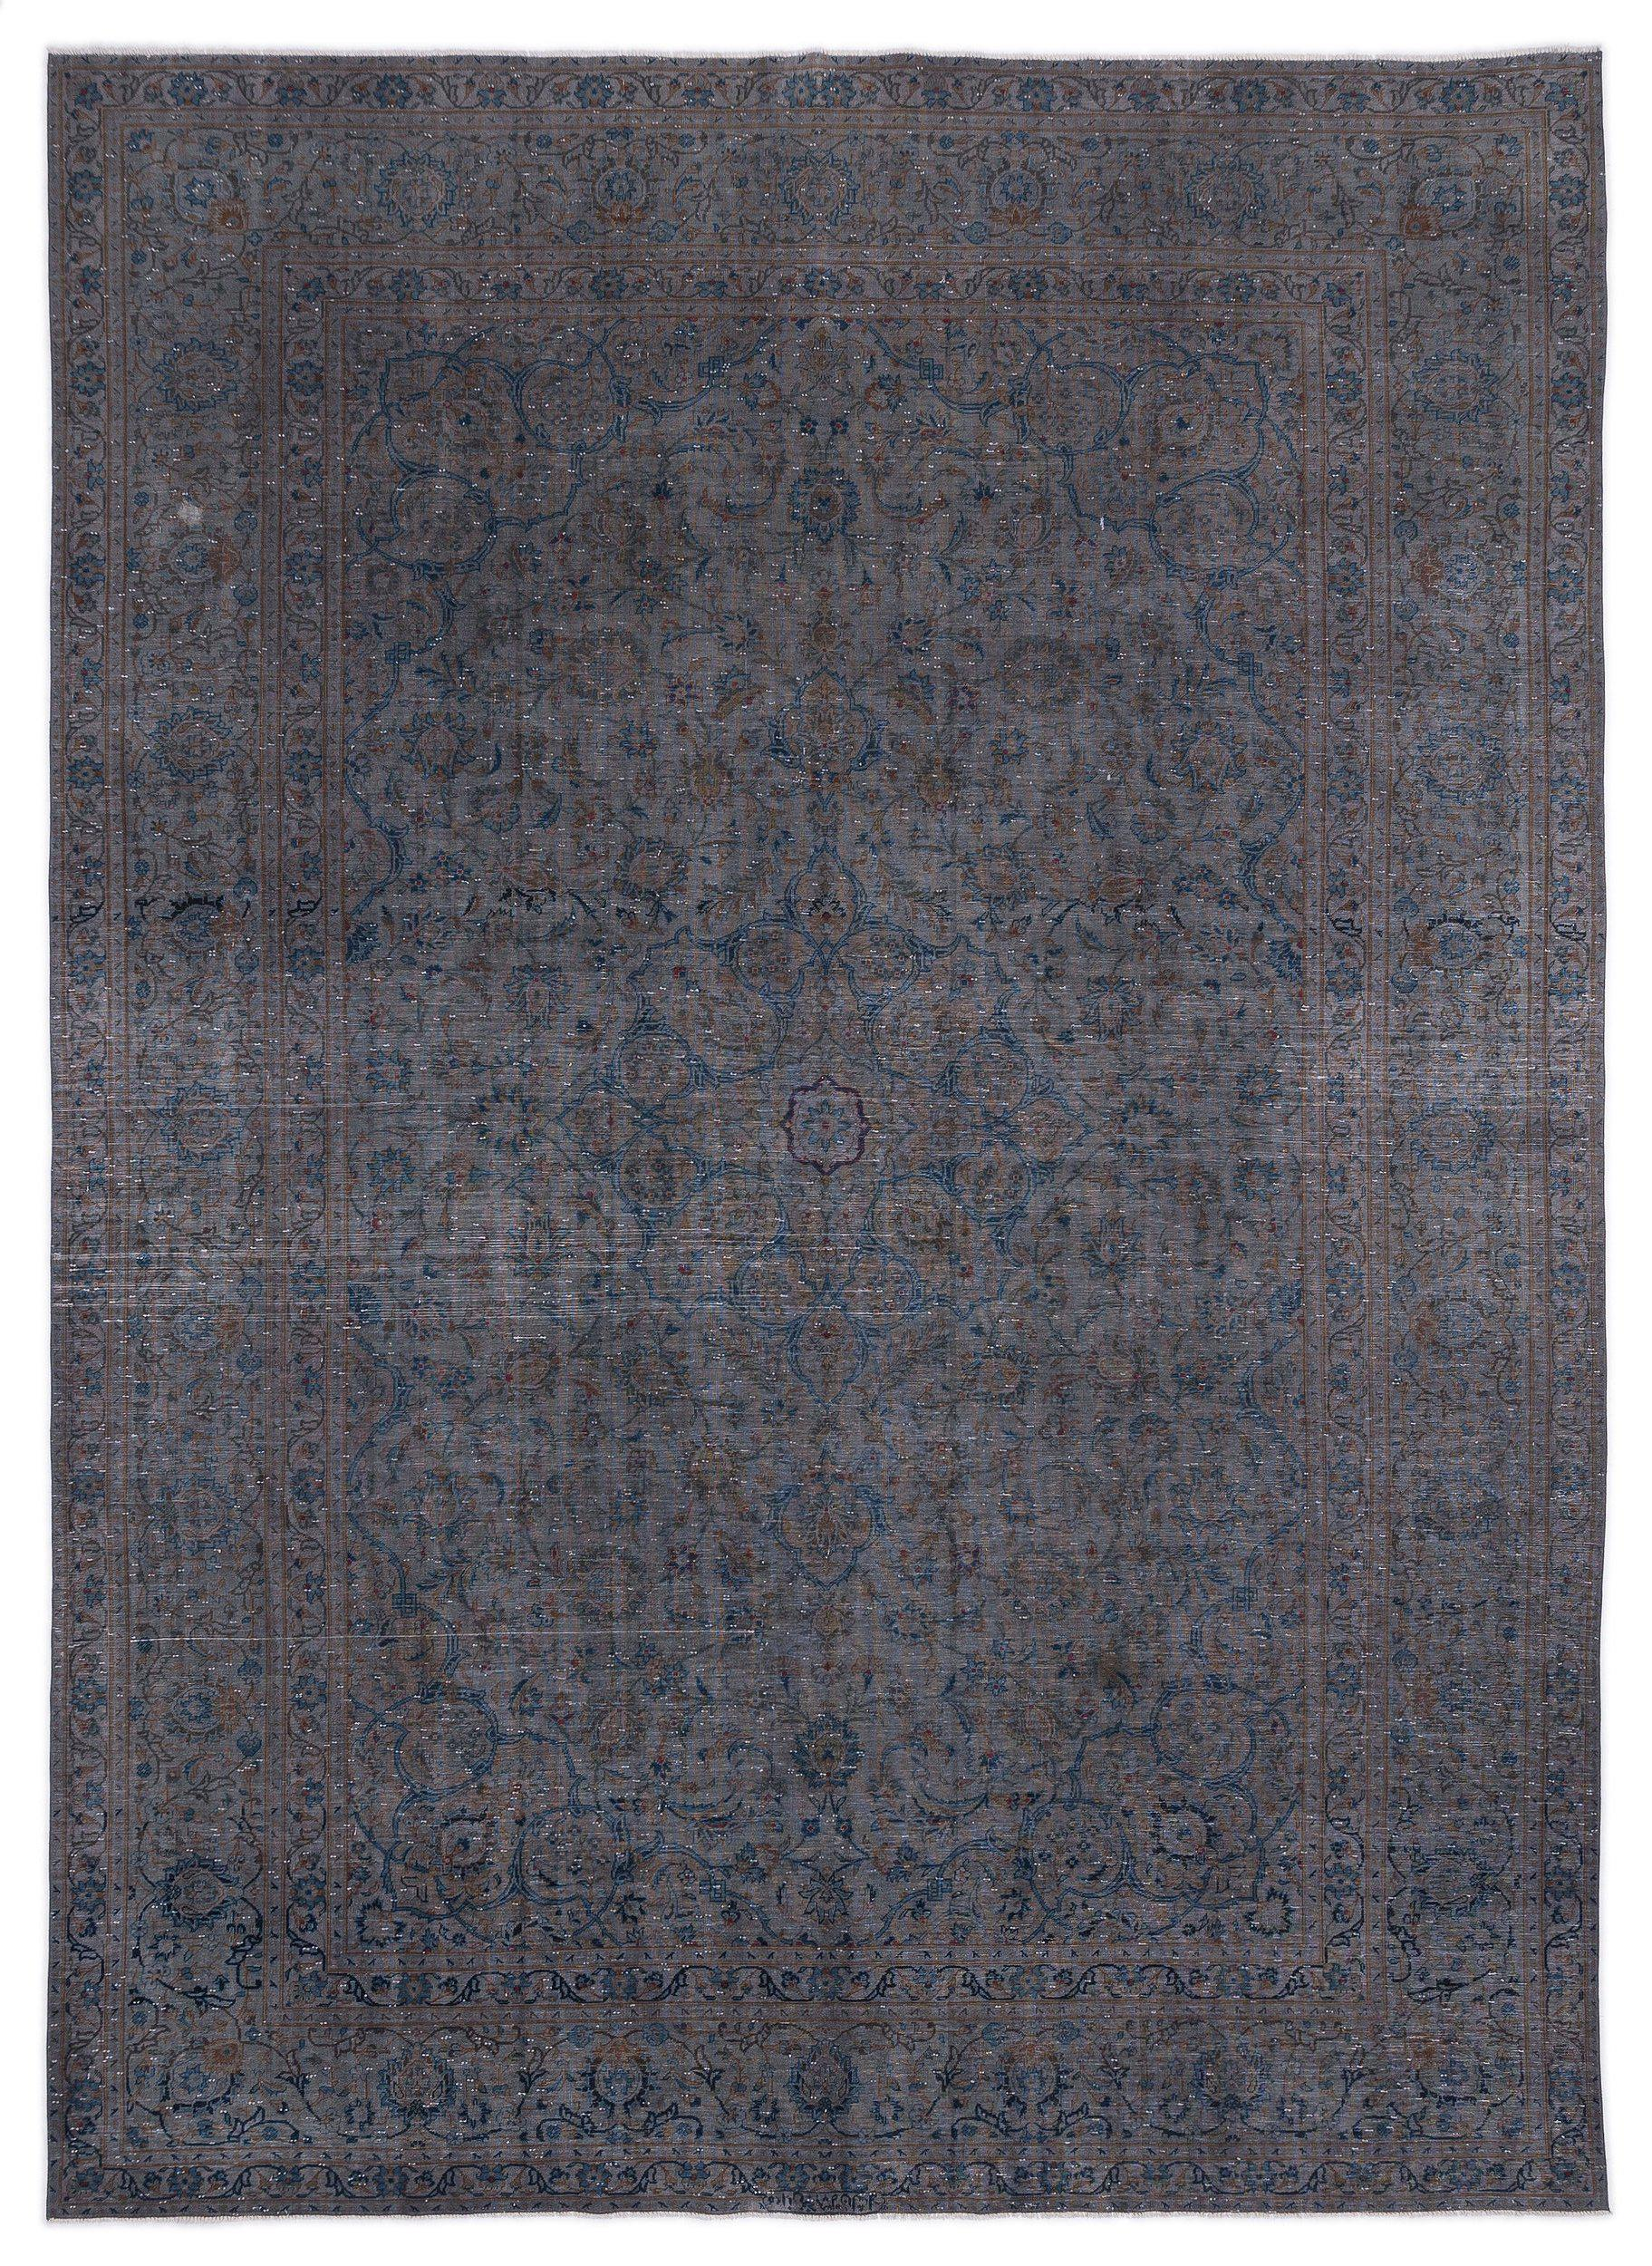 Gray Over Dyed Vintage XLarge Rug 9'9'' x 13'1'' ft 296 x 400 cm